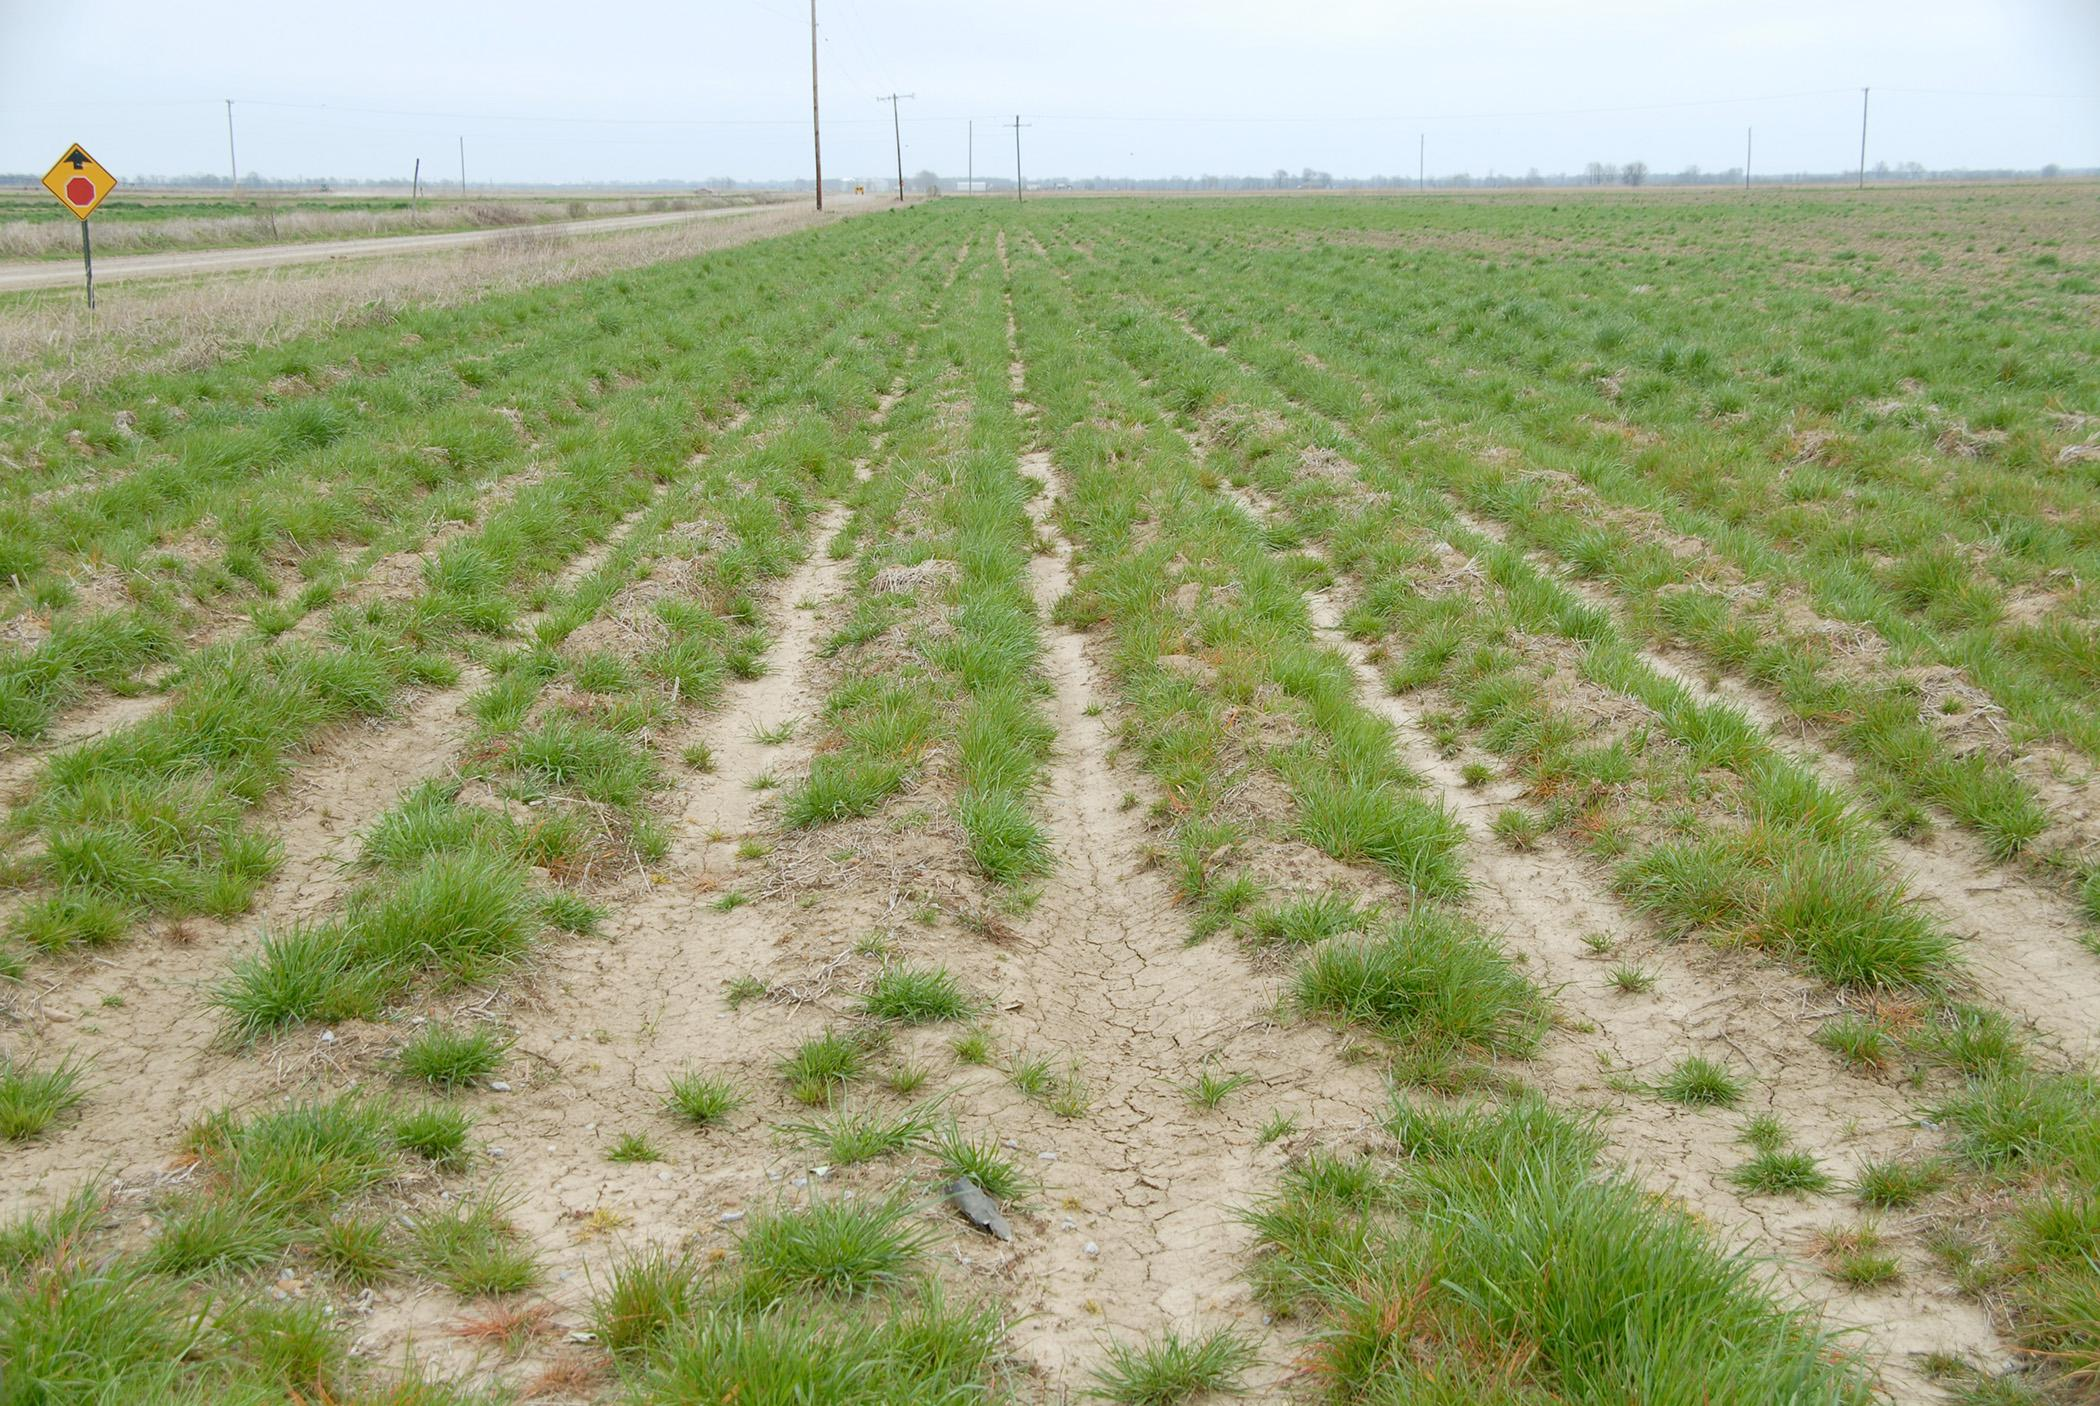 Populations of glyphosate-resistant Italian ryegrass, such as this weed photographed in Washington County in 2010, have been found in 31 Mississippi counties. (Photo by MAFES/Tom Eubank)